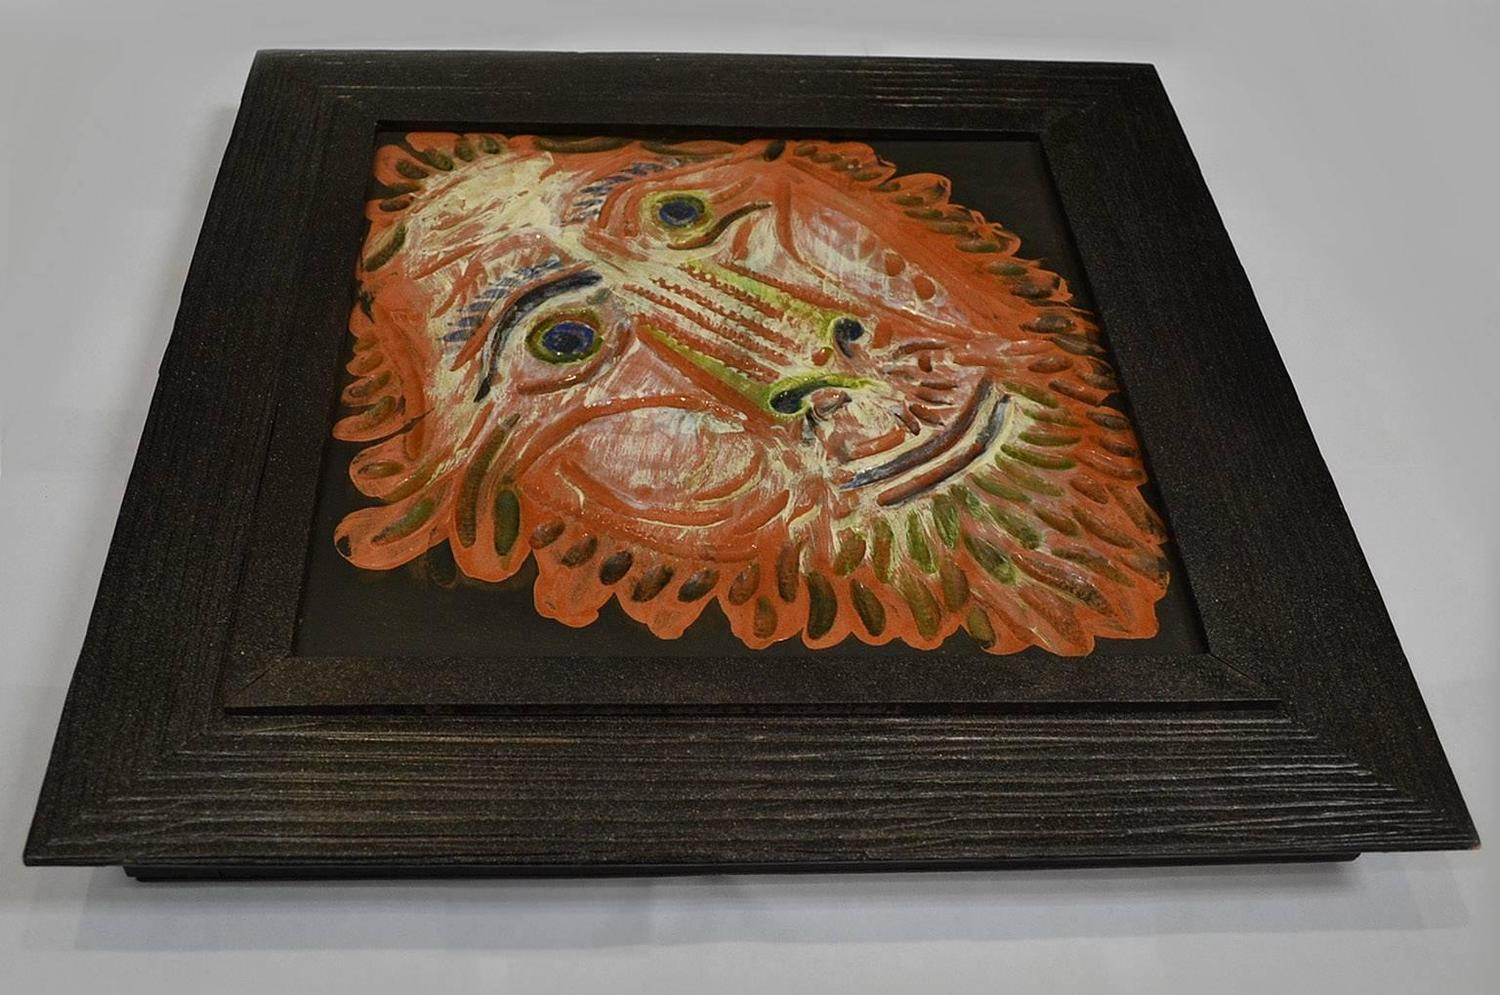 large tete de lion lion s head madoura pottery tile ar 575 by pablo picasso for sale at 1stdibs. Black Bedroom Furniture Sets. Home Design Ideas